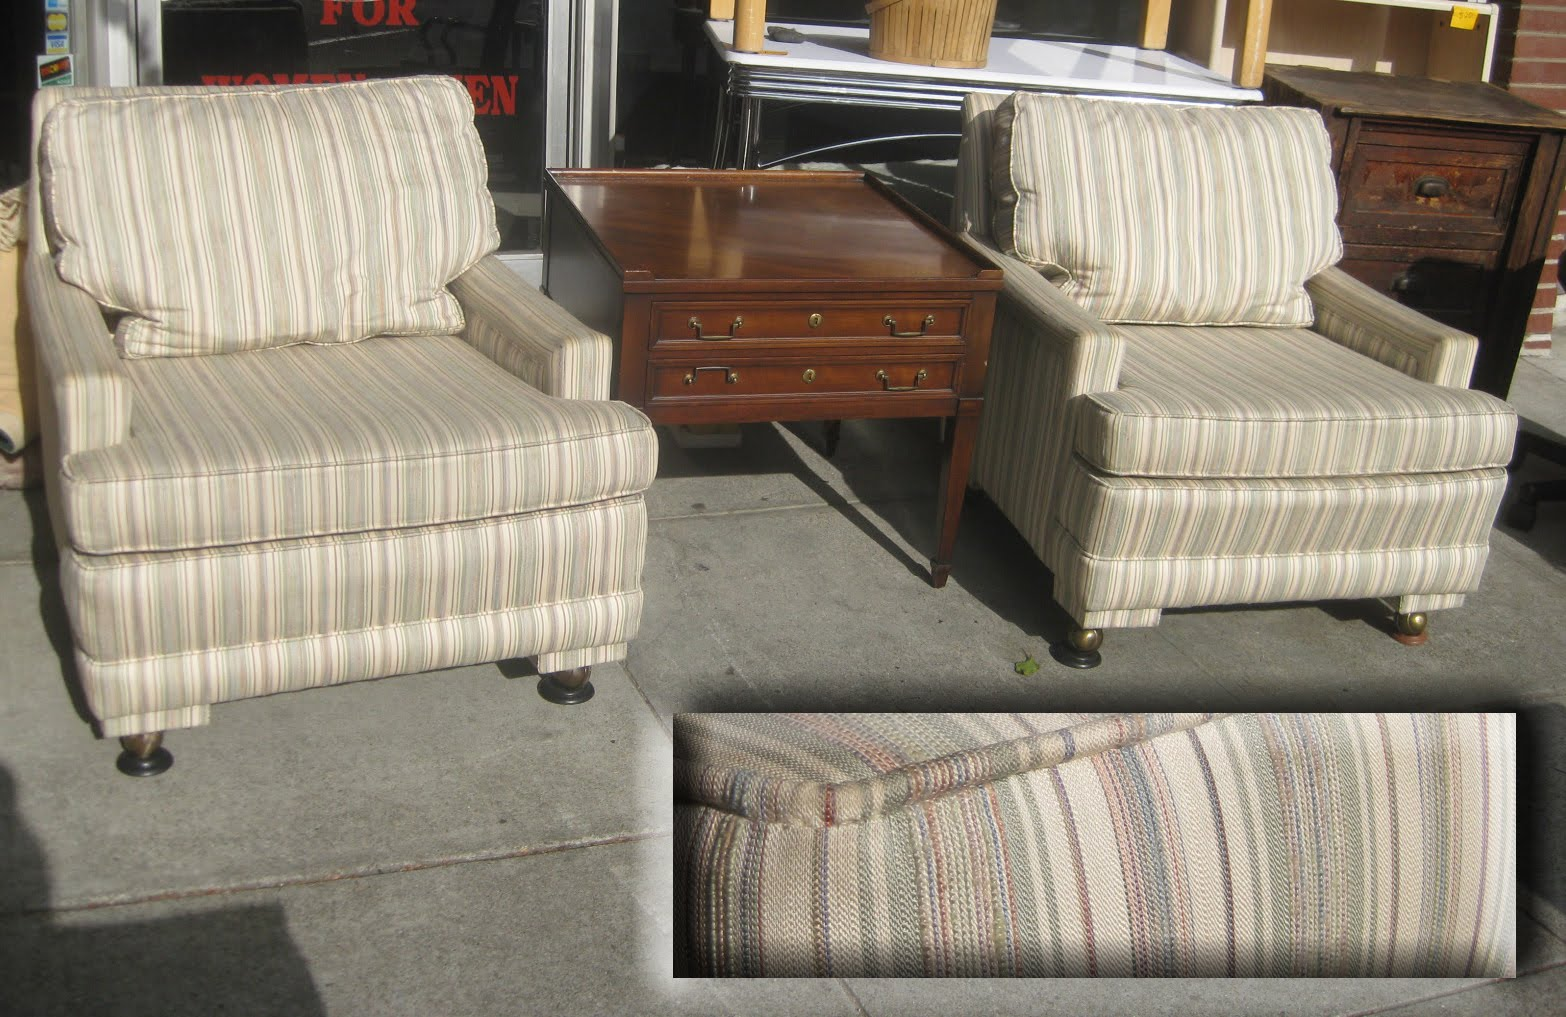 & COLLECTIBLES: SOLD - Pair of Striped Living Room Chairs - $165